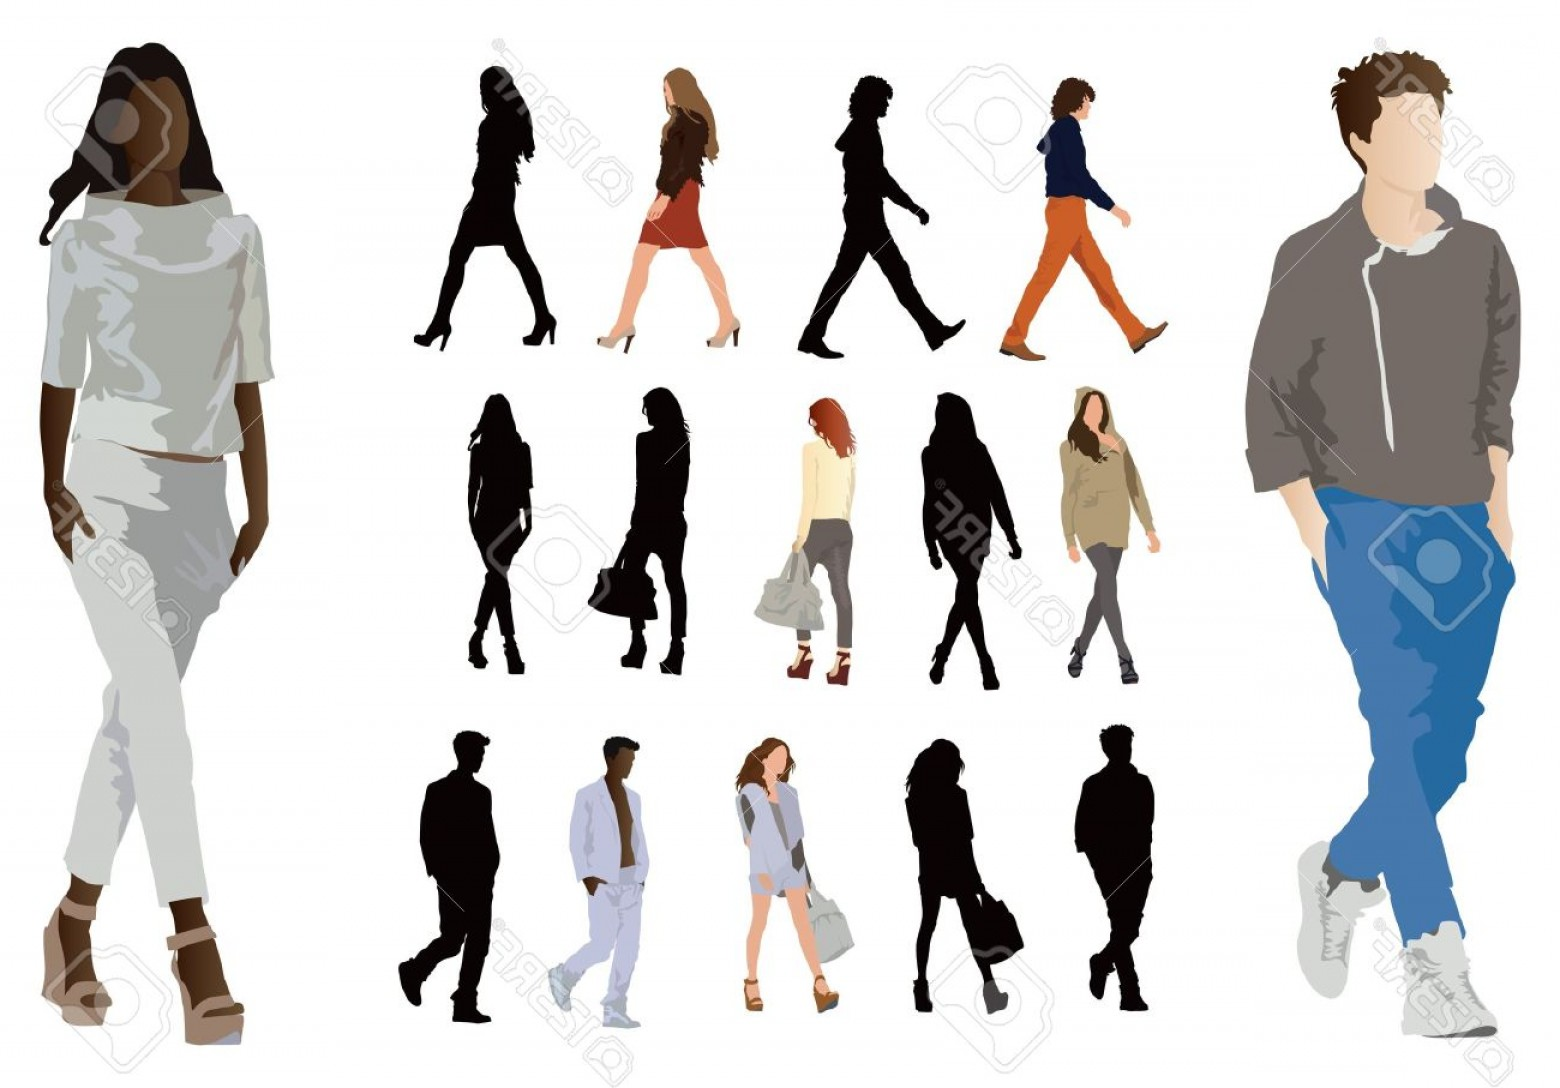 Male Human Vector: Photogroup Of Elegant Dressed In Fashion Clothes Young People Long Legs And Perfect Body Proportions Vect